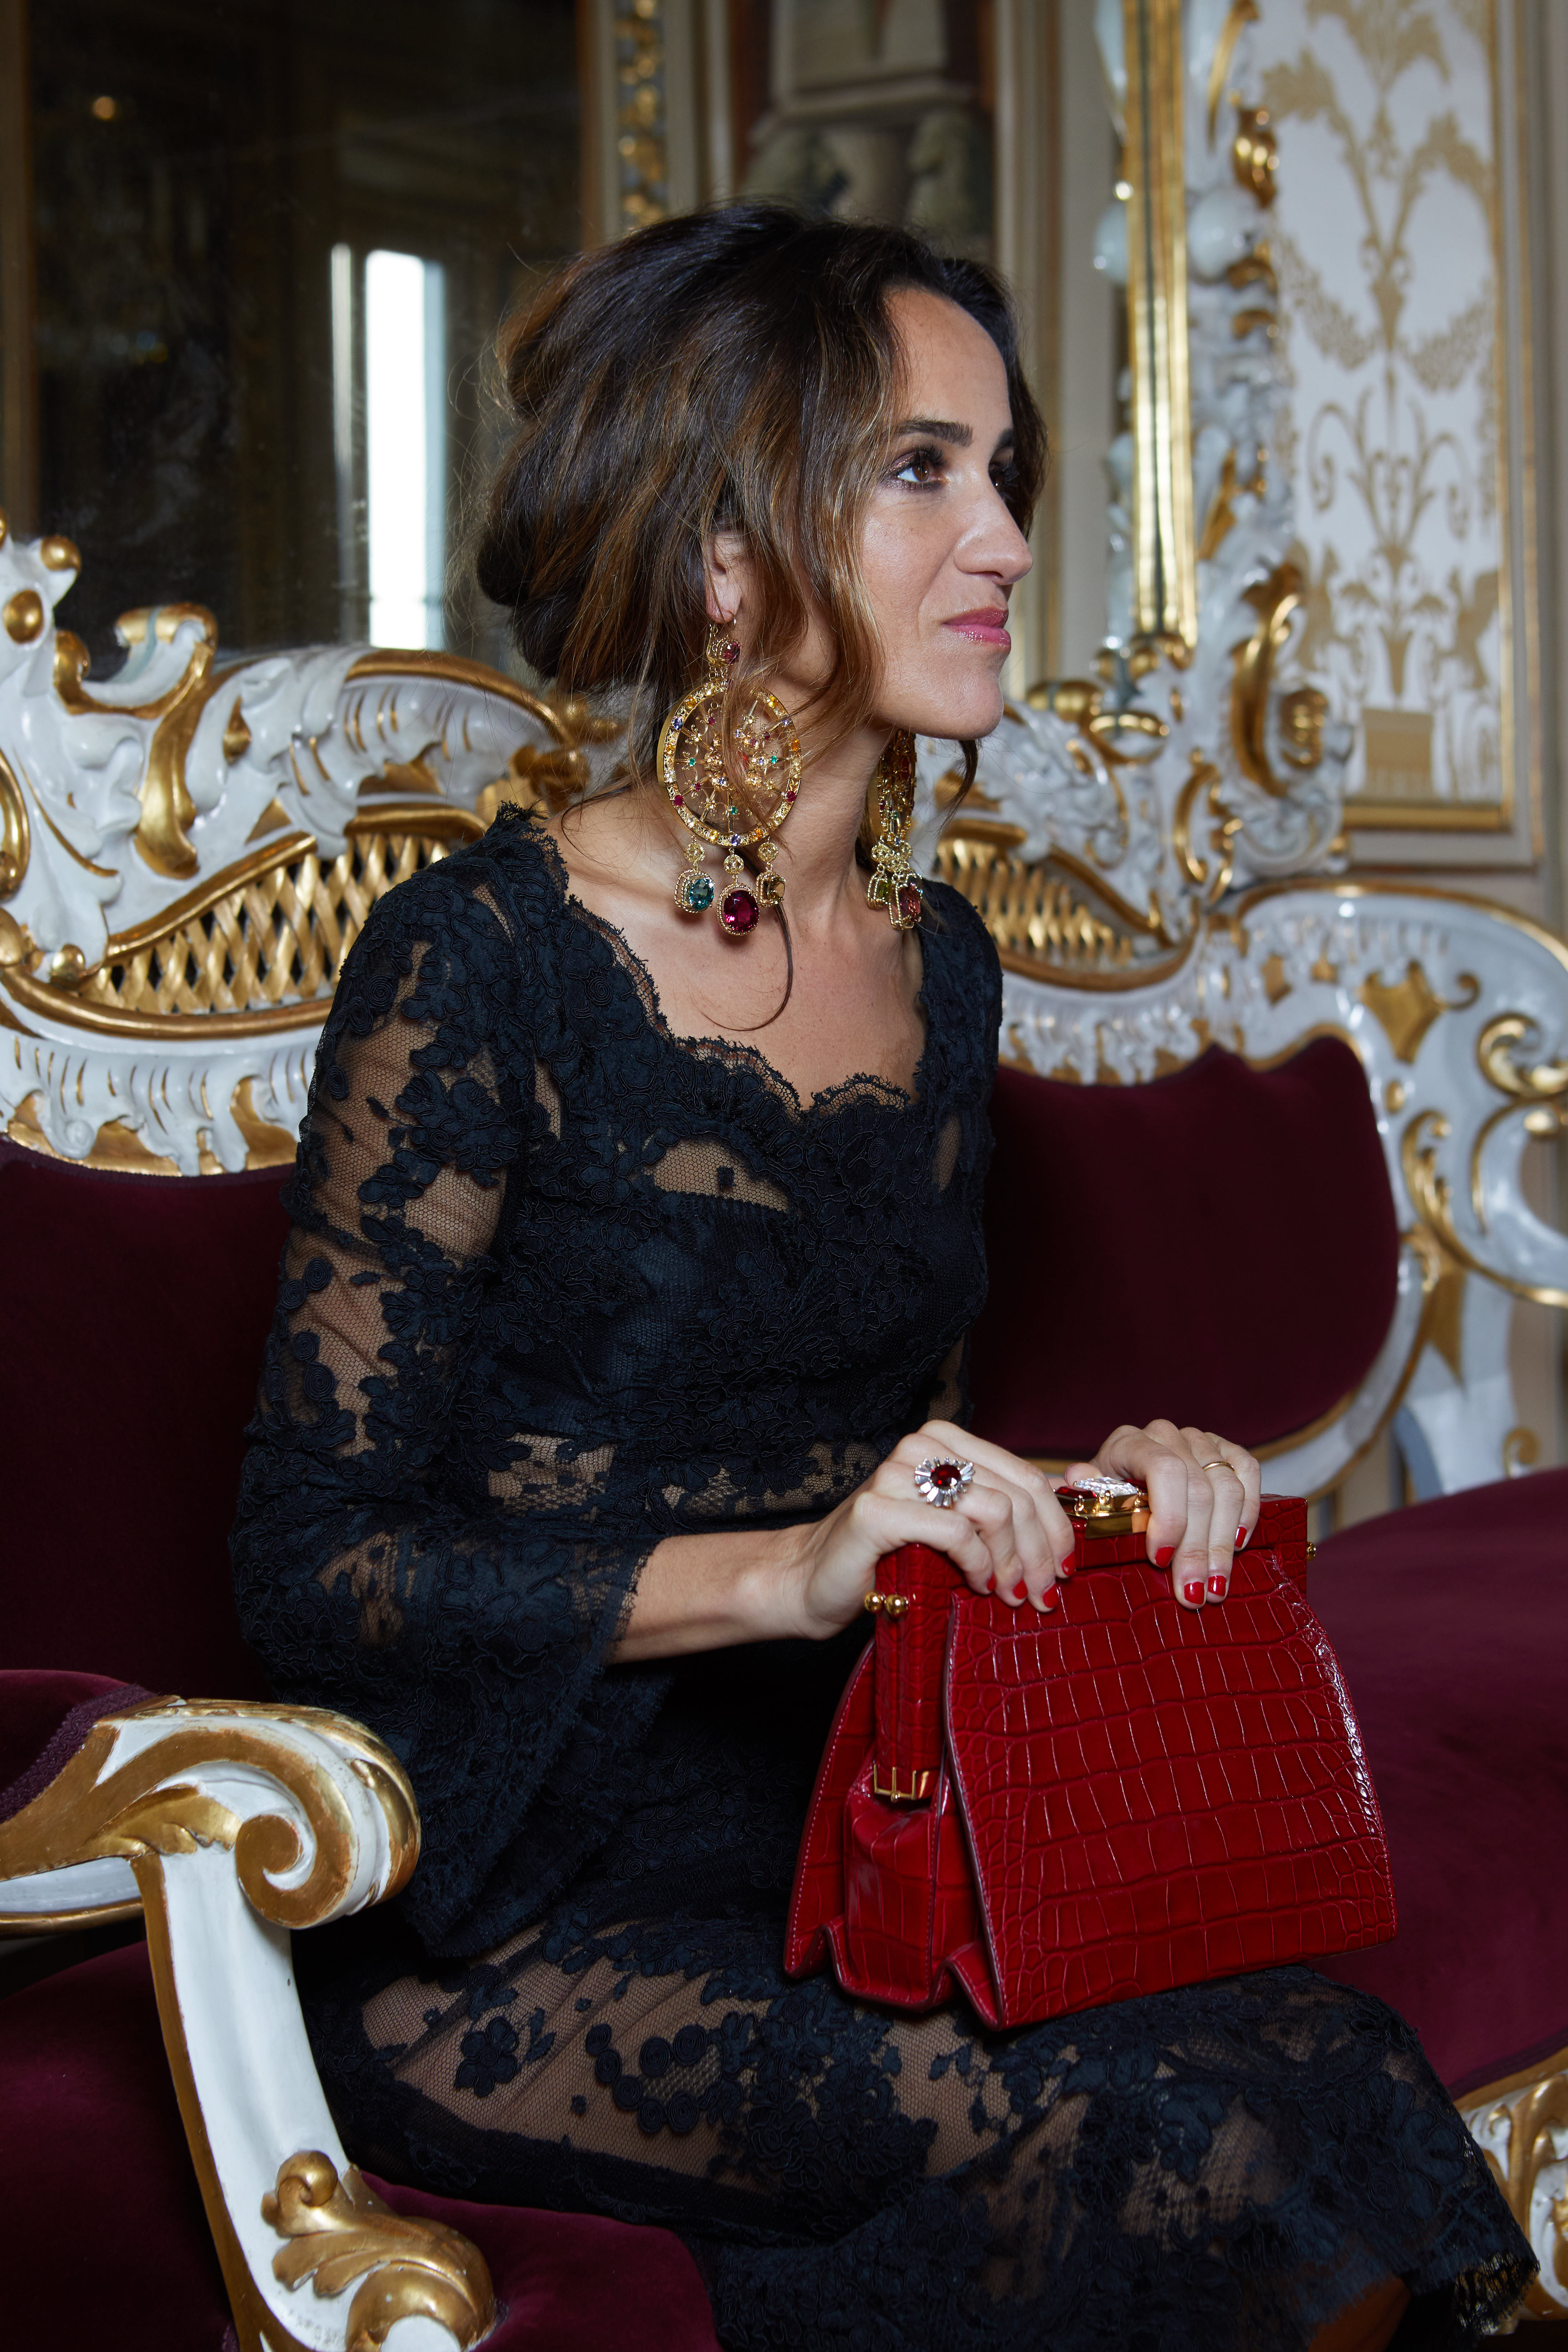 Coco Brandolini on Jewelry, Style and her Fabulous Family